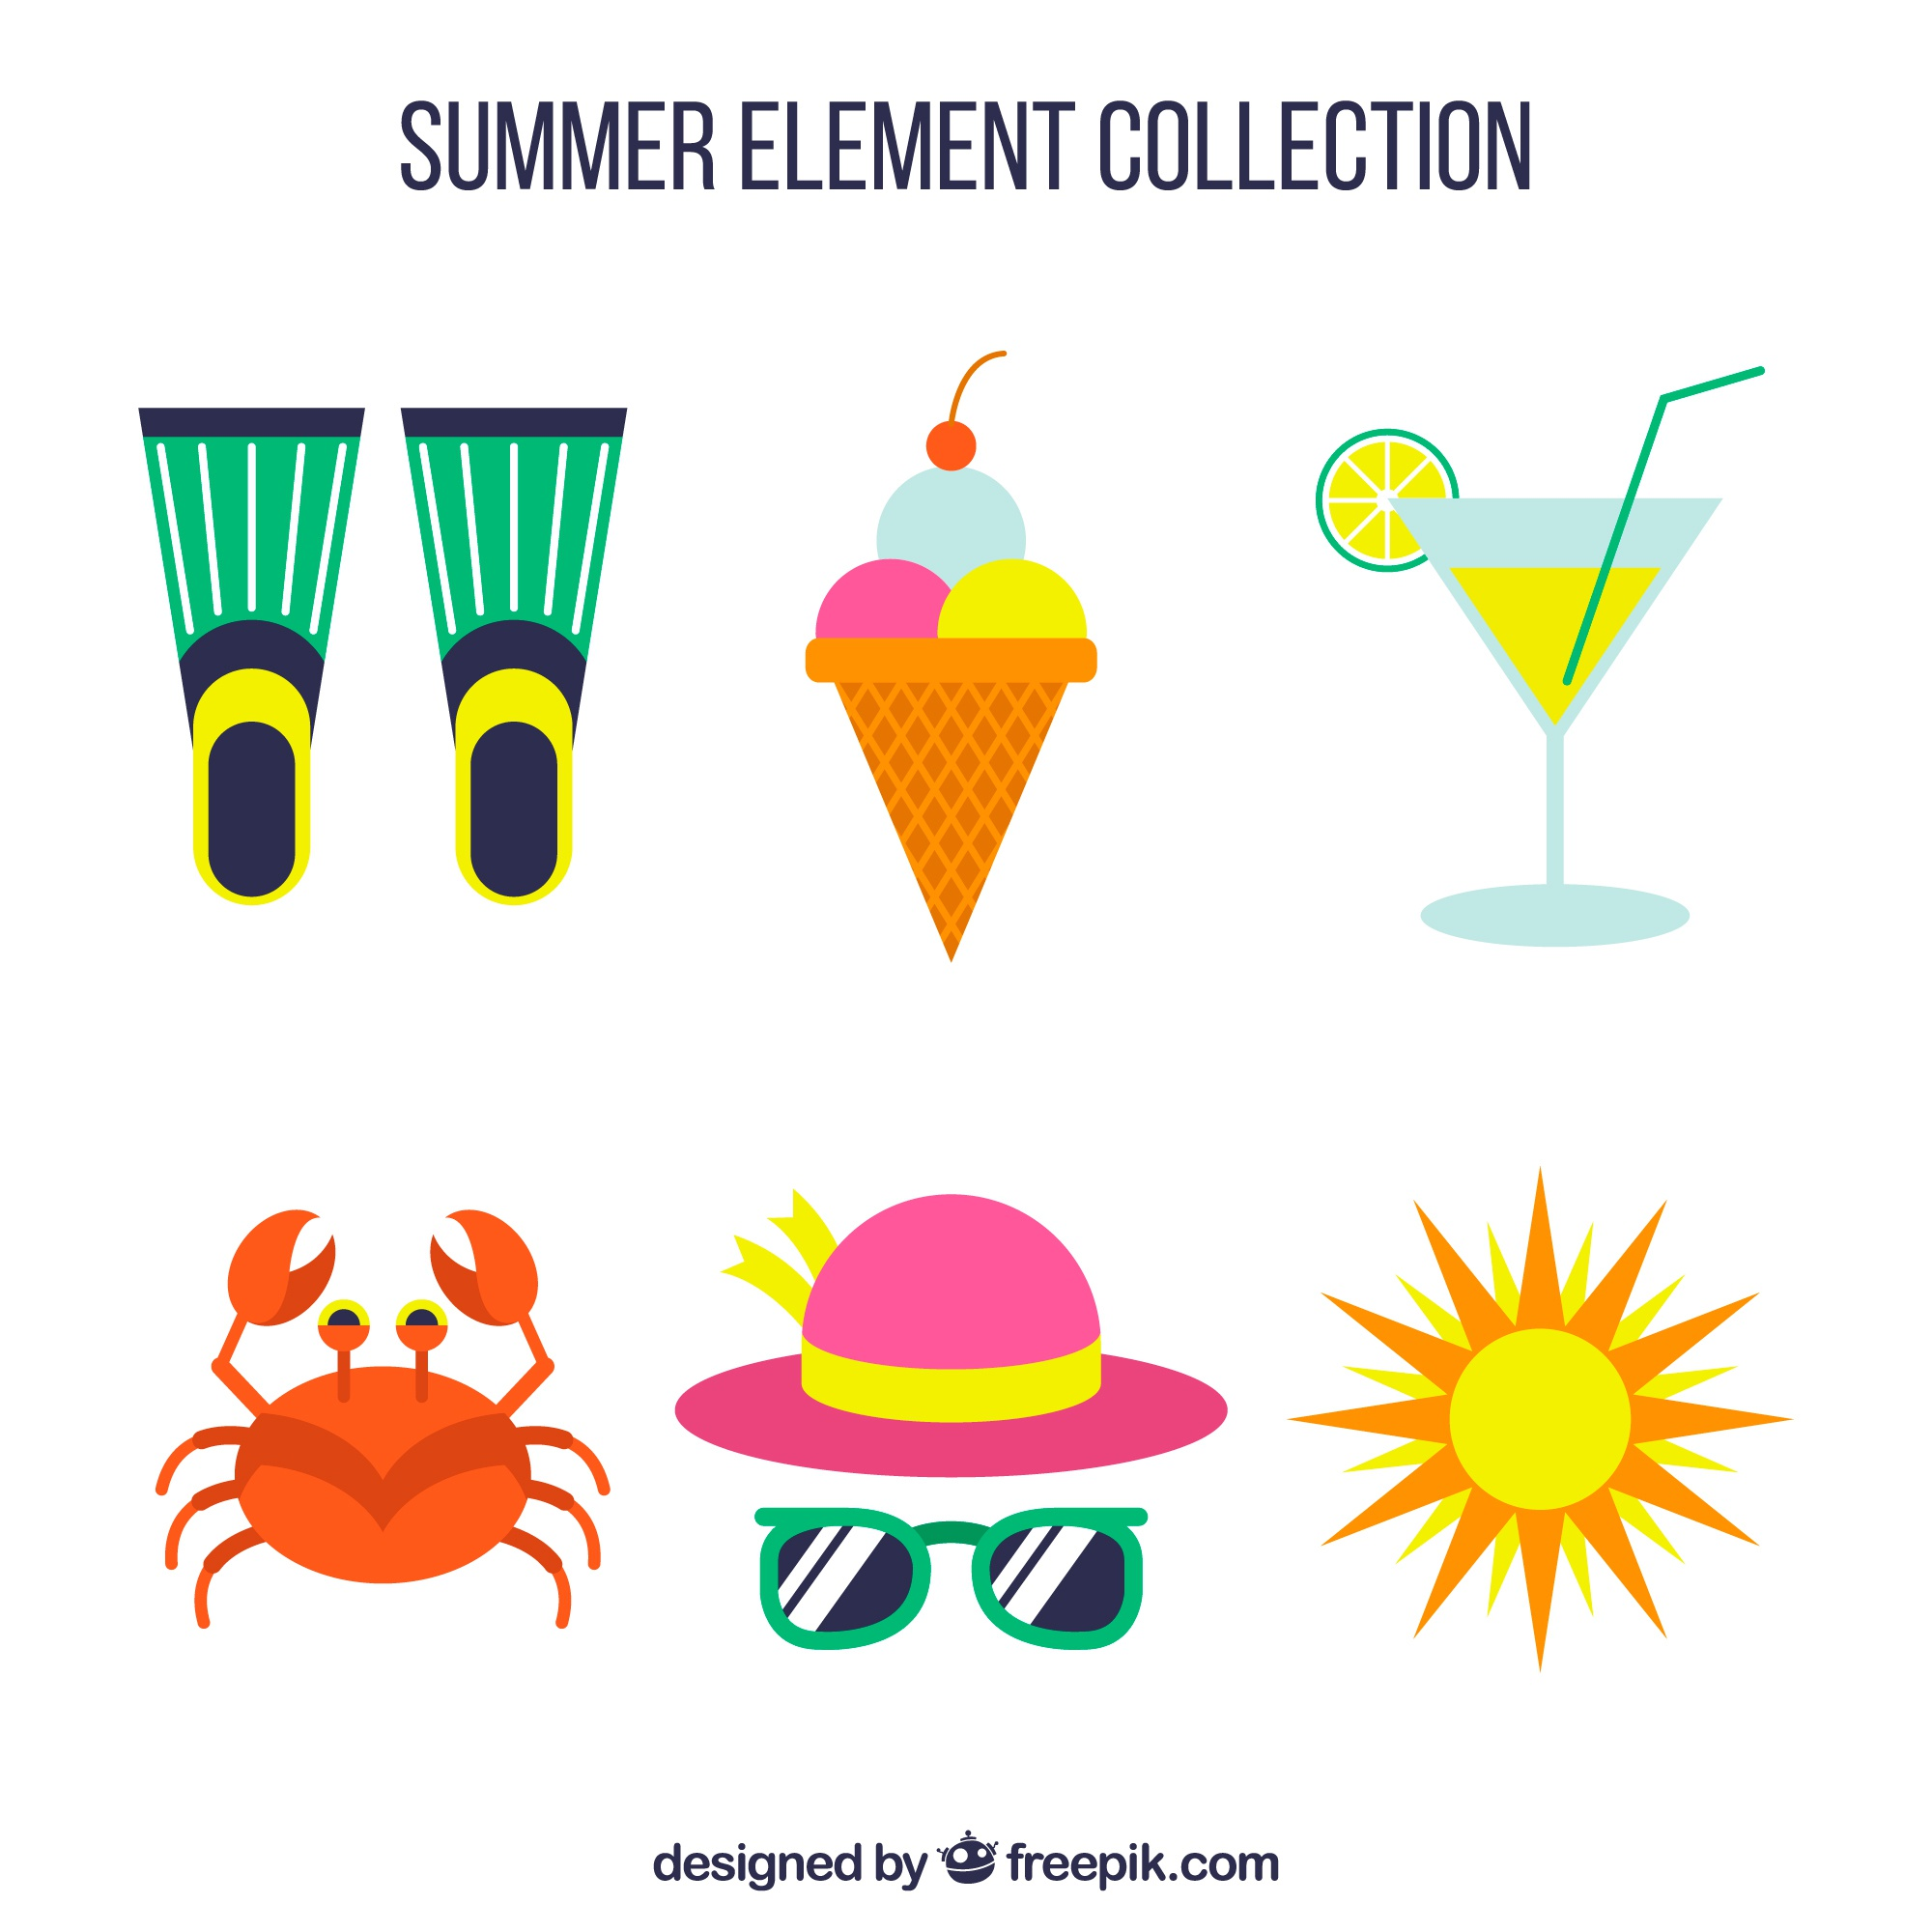 Pack of summer elements in flat design